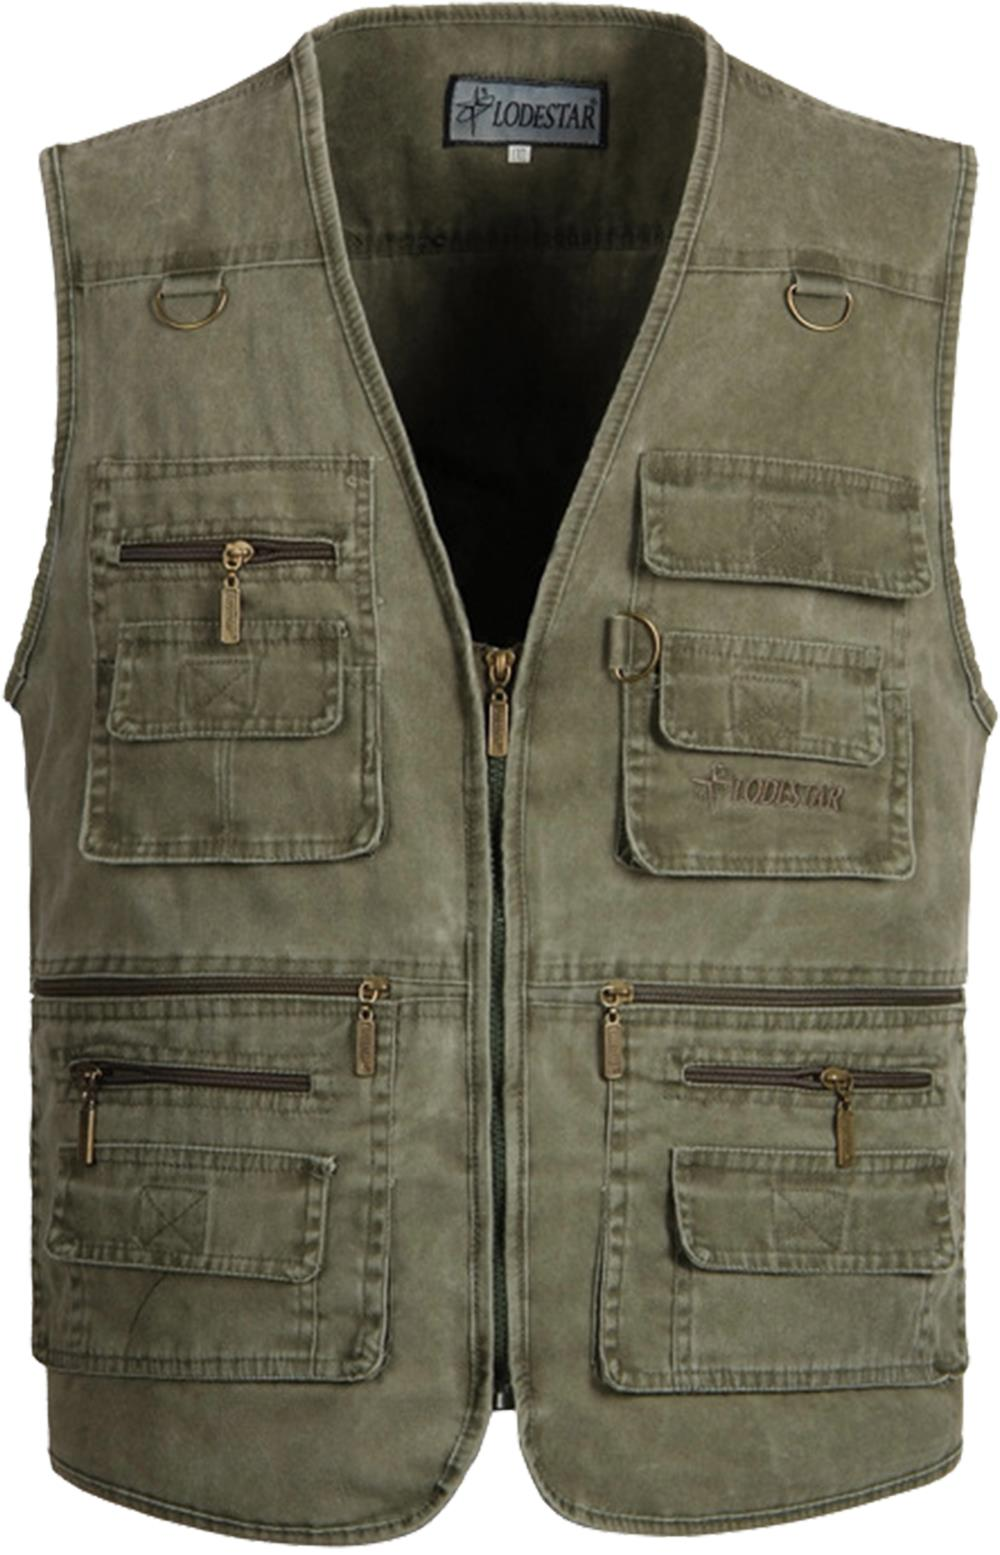 Mens Multi Pocket Travel Safari Vest Outdoor Plus Size Highly Breathable Vest J20150604vest002